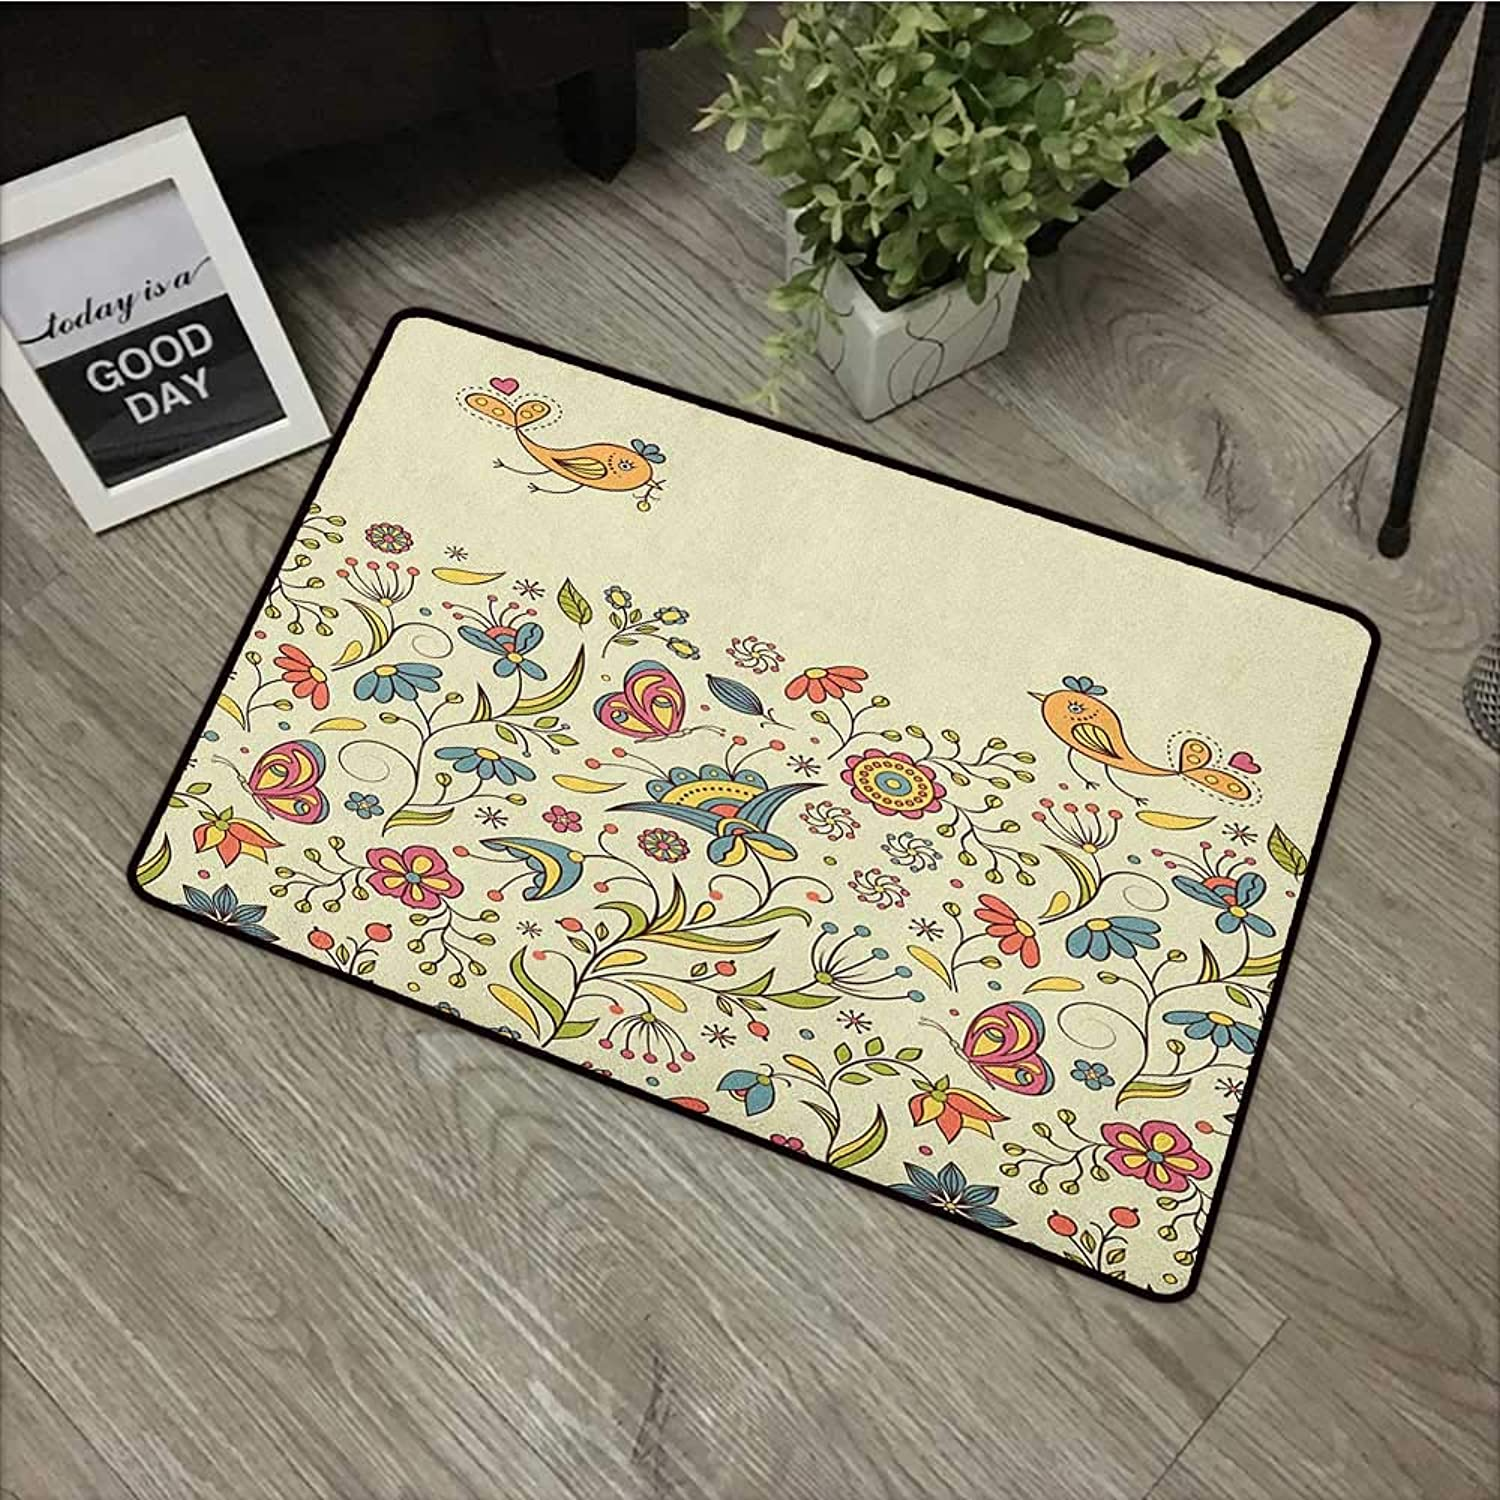 Corridor Door mat W35 x L59 INCH Floral,Blooming colorful Petals of Summer with Butterflies and Flying Birds Flora and Fauna, Multicolor with Non-Slip Backing Door Mat Carpet